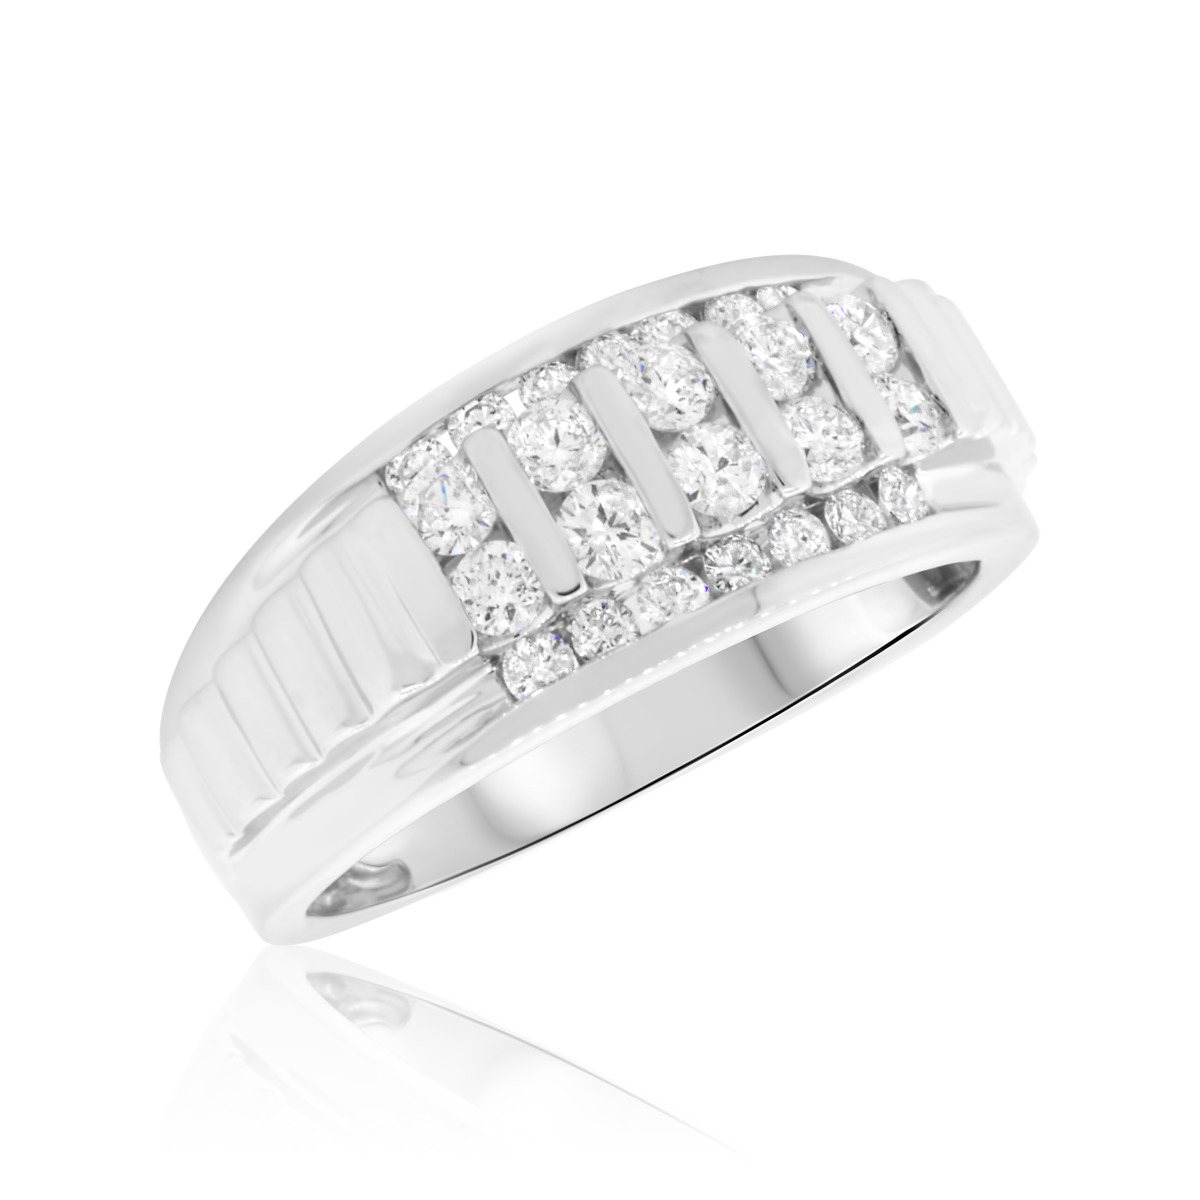 1 CT TW Diamond Mens Wedding Band 10K White Gold